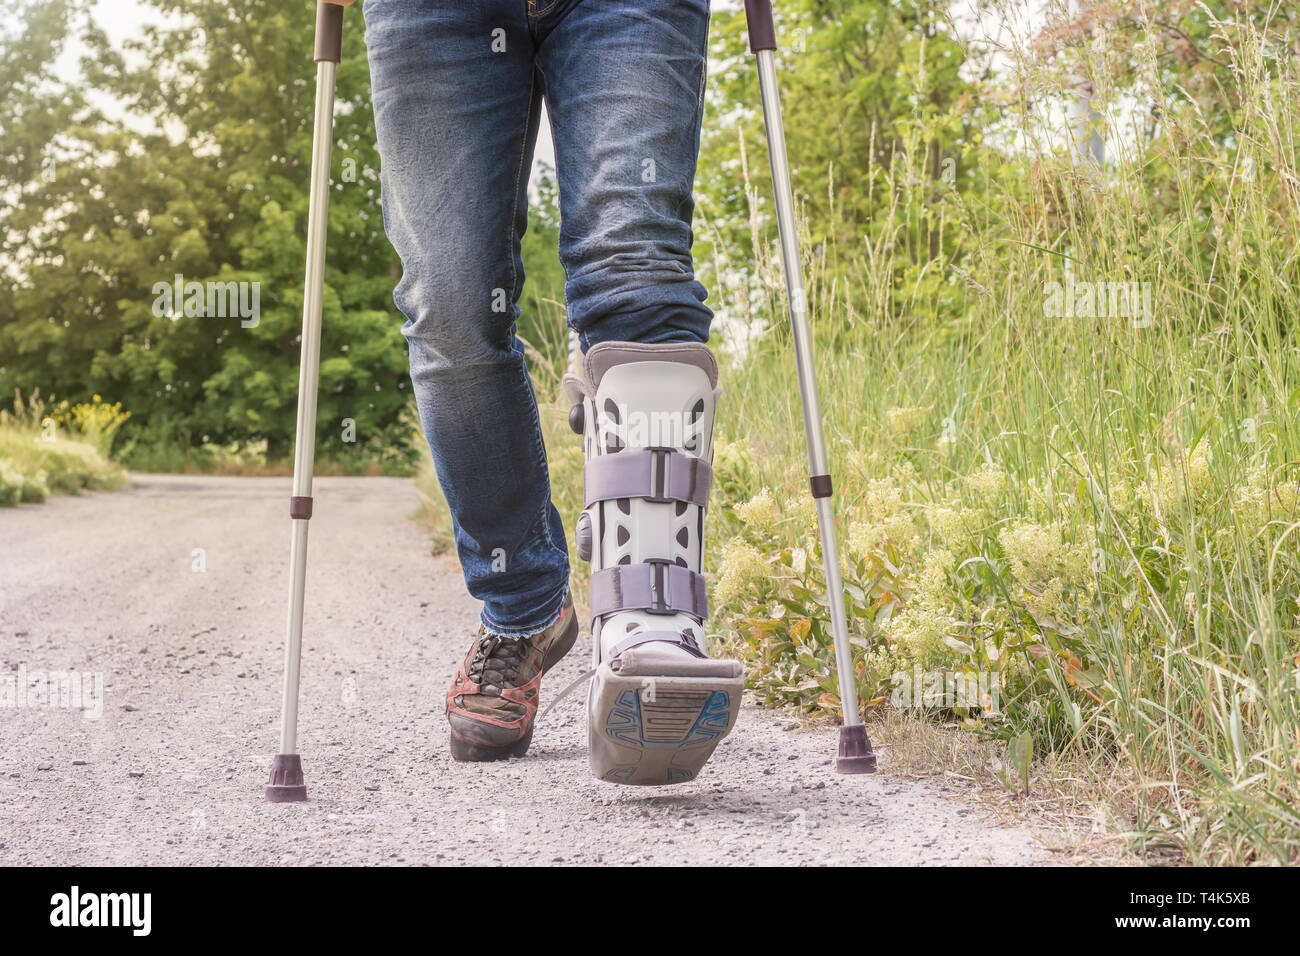 Man is running with an orthosis and walking aids on a dirt road - Stock Image